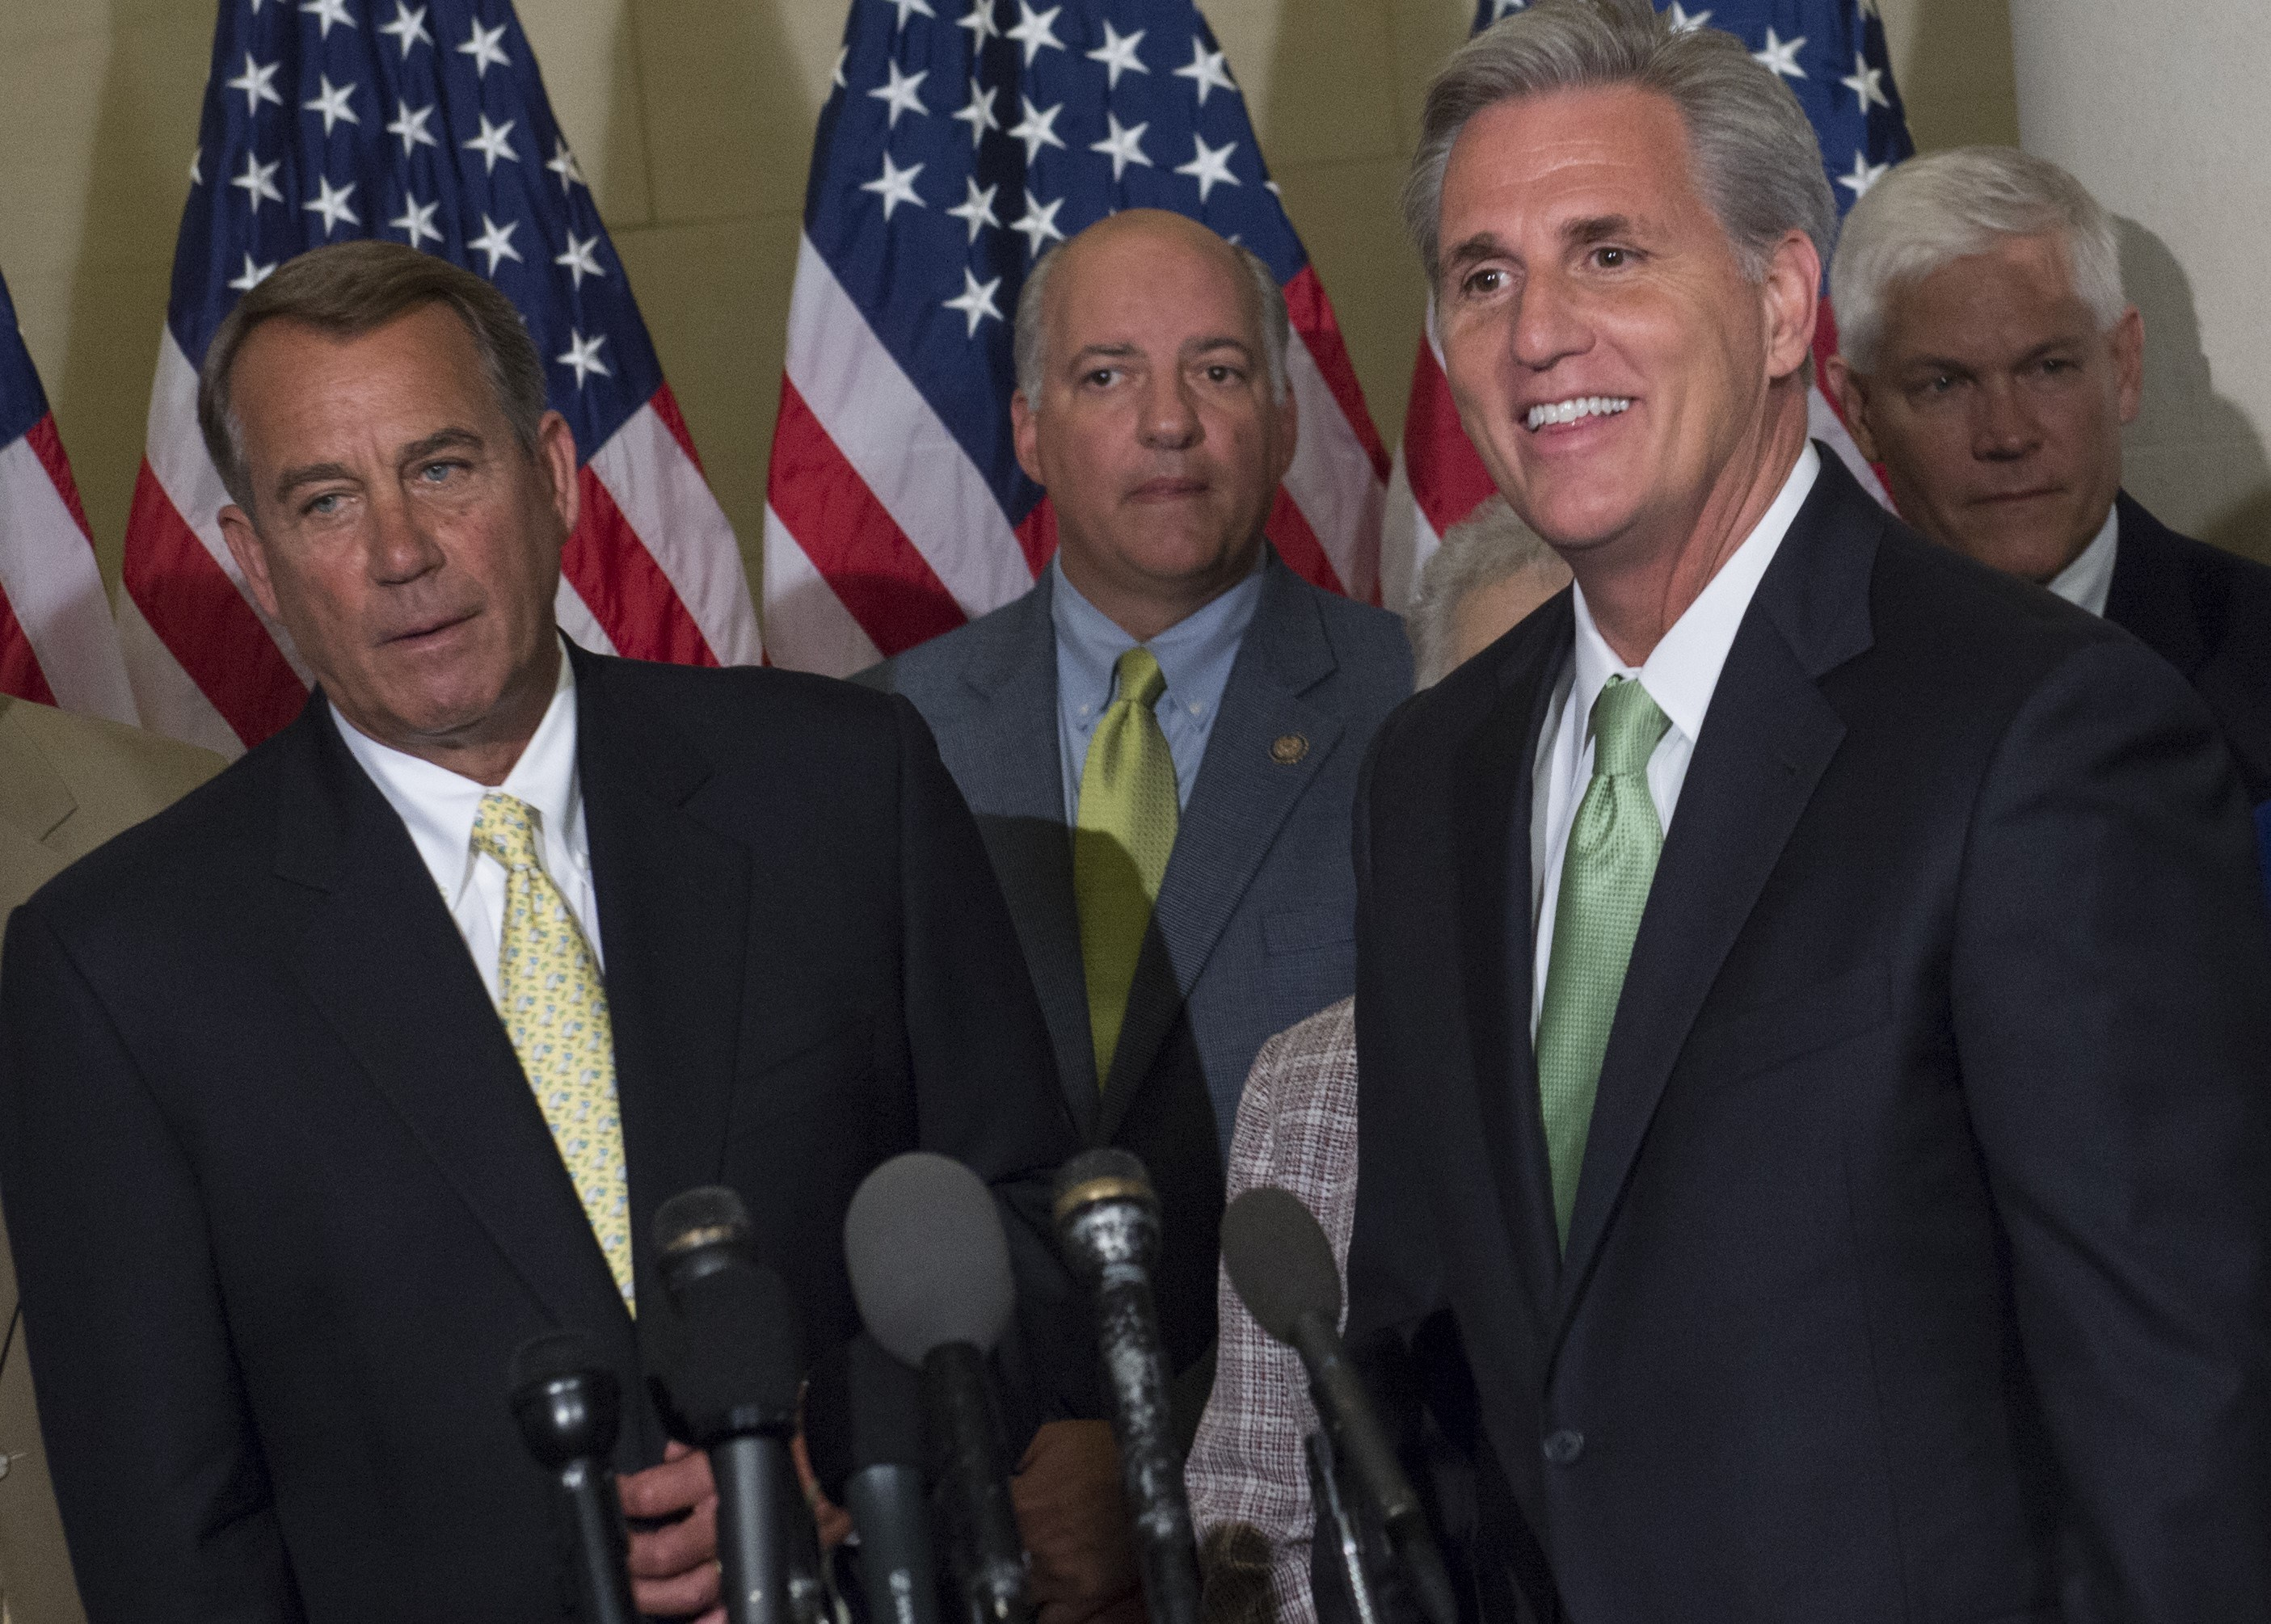 Newly elected House Republican Majority Leader Kevin McCarthy (R) and Speaker of the House John Boehner (L), hold a press conference following Republican leadership elections on Capitol Hill in Washington, DC, June 19, 2014. The Republican primary election loss by outgoing House Majority Leader Eric Cantor sparked an unexpected Republican leadership shift. AFP PHOTO / Saul LOEB        (Photo credit should read SAUL LOEB/AFP/Getty Images)